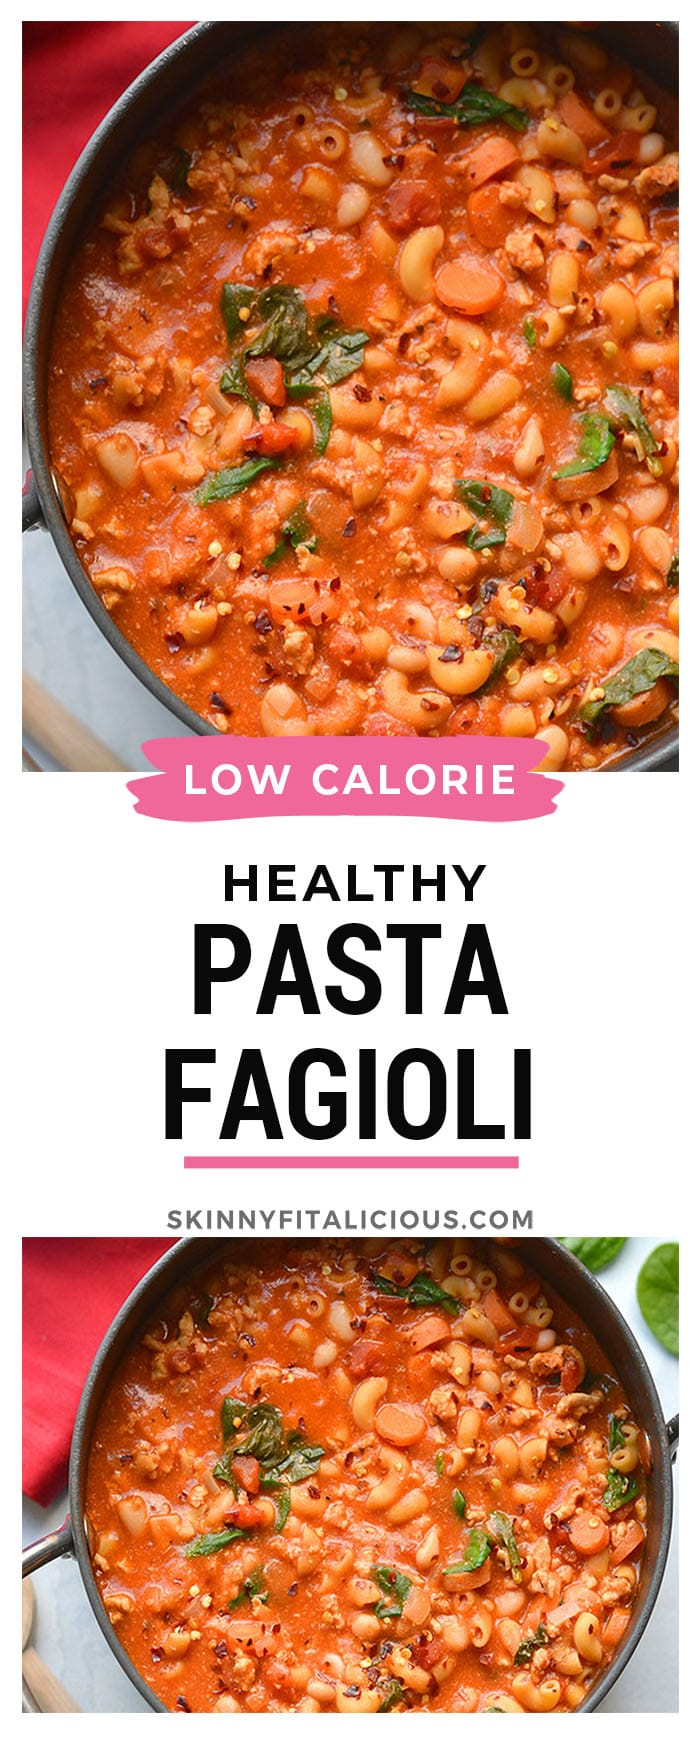 Healthy Pasta Fagioli is a cozy, protein and fiber packed low calorie dinner recipe. Made with a few simple ingredients swaps to make it lower calorie and nutritionally balanced for a tasty and filling meal.